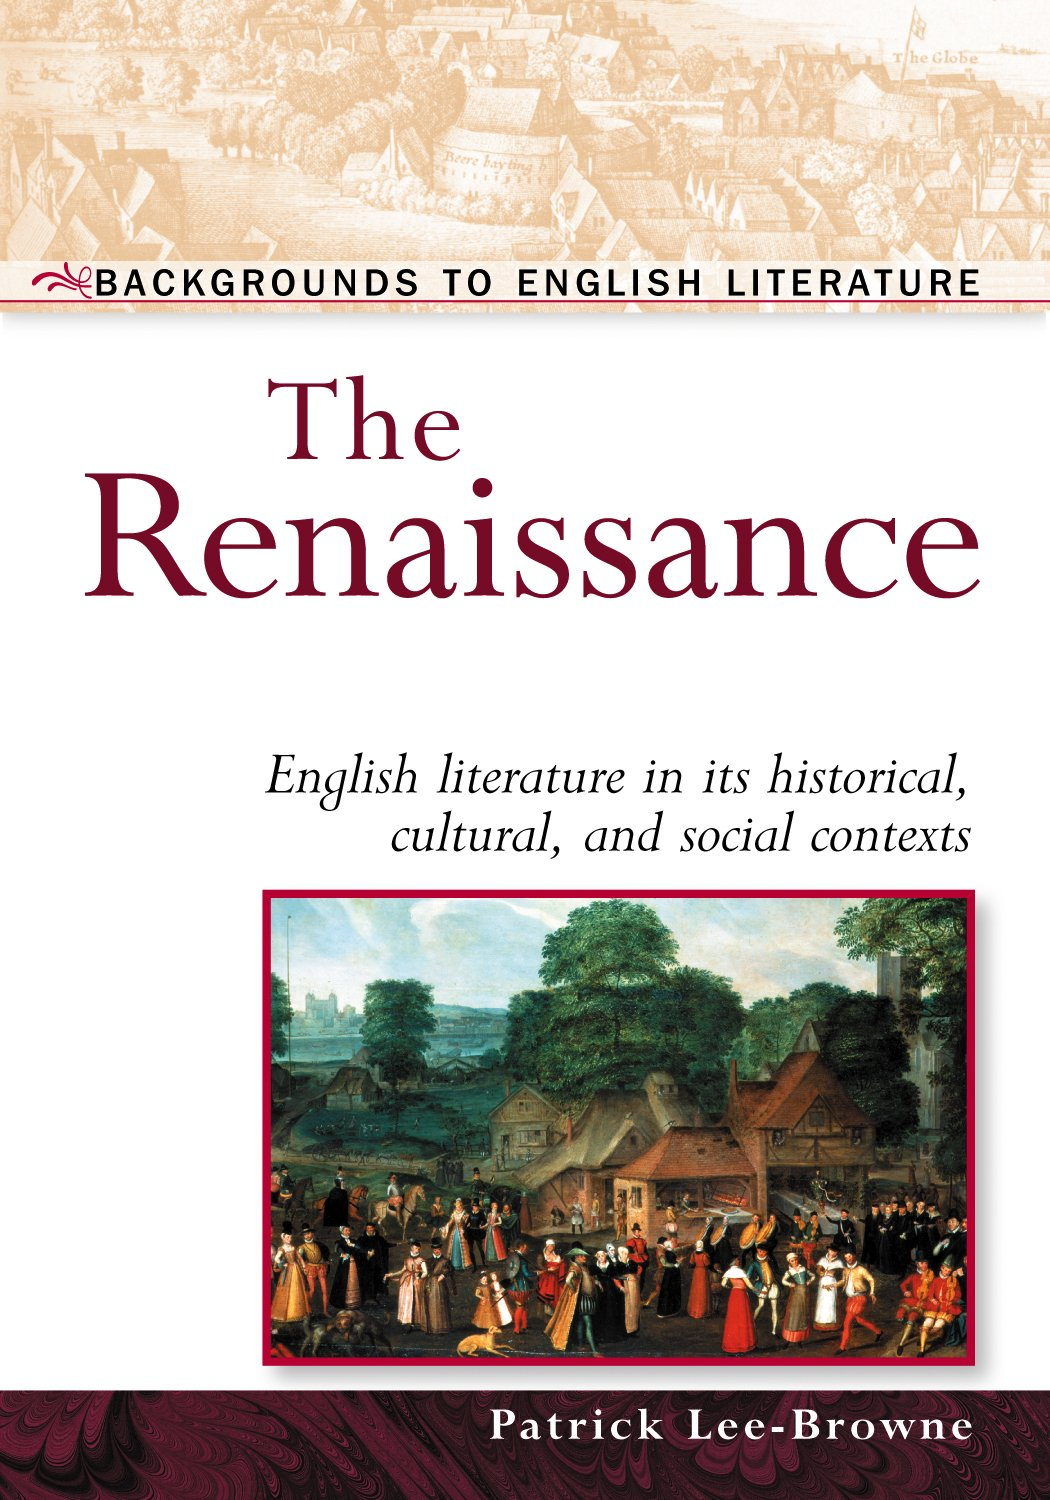 Read Online The Renaissance: English Literature in Its Historical, Cultural, and Social Contexts (Backgrounds to English Literature) PDF